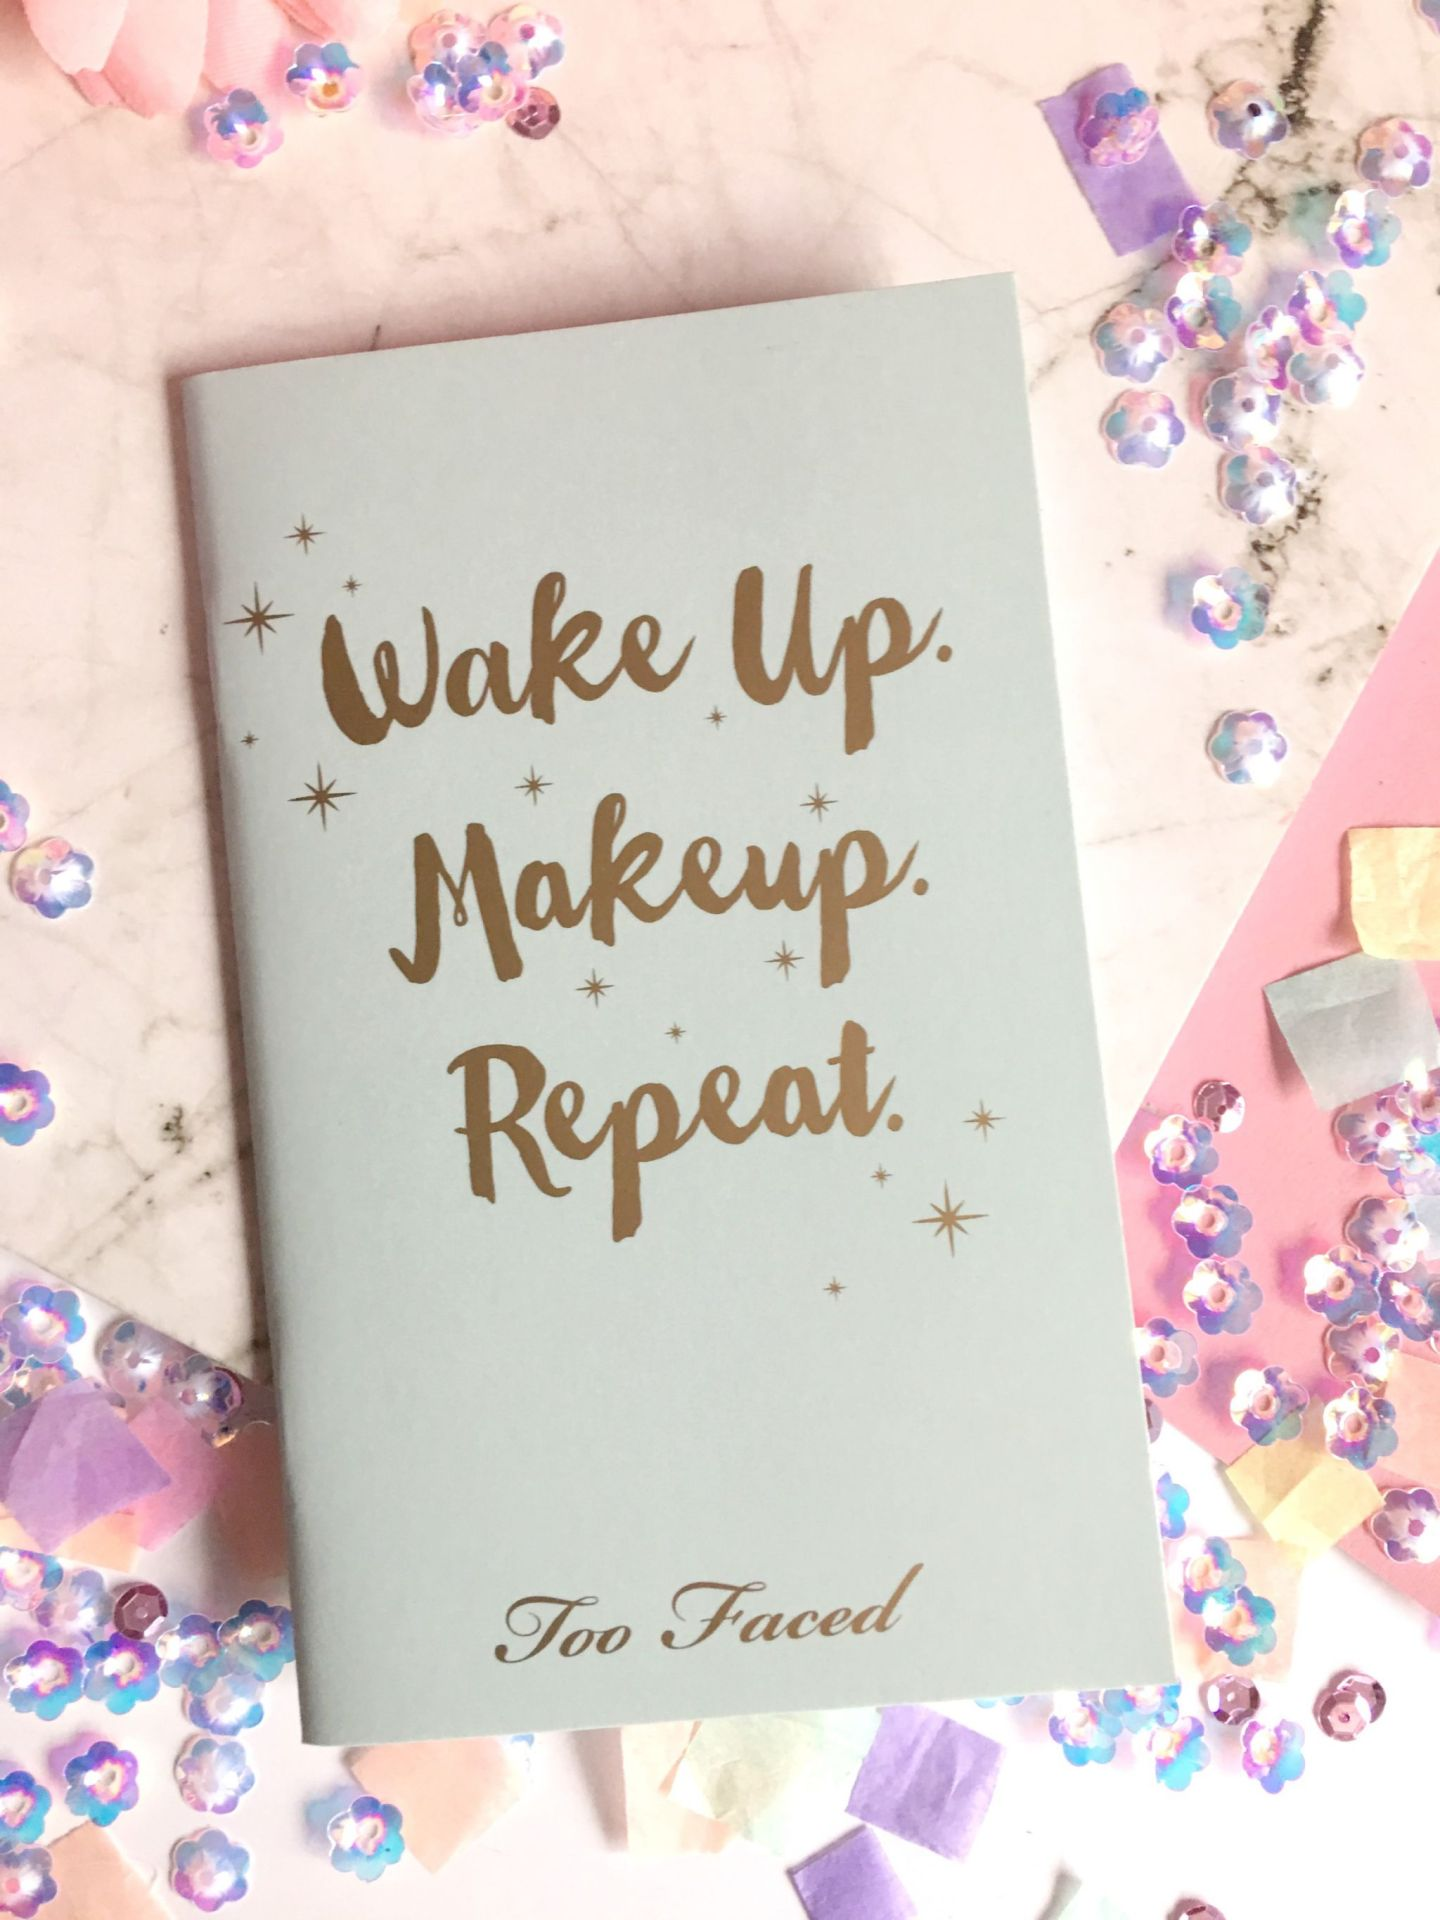 Too Faced Pretty Little Planner (2)